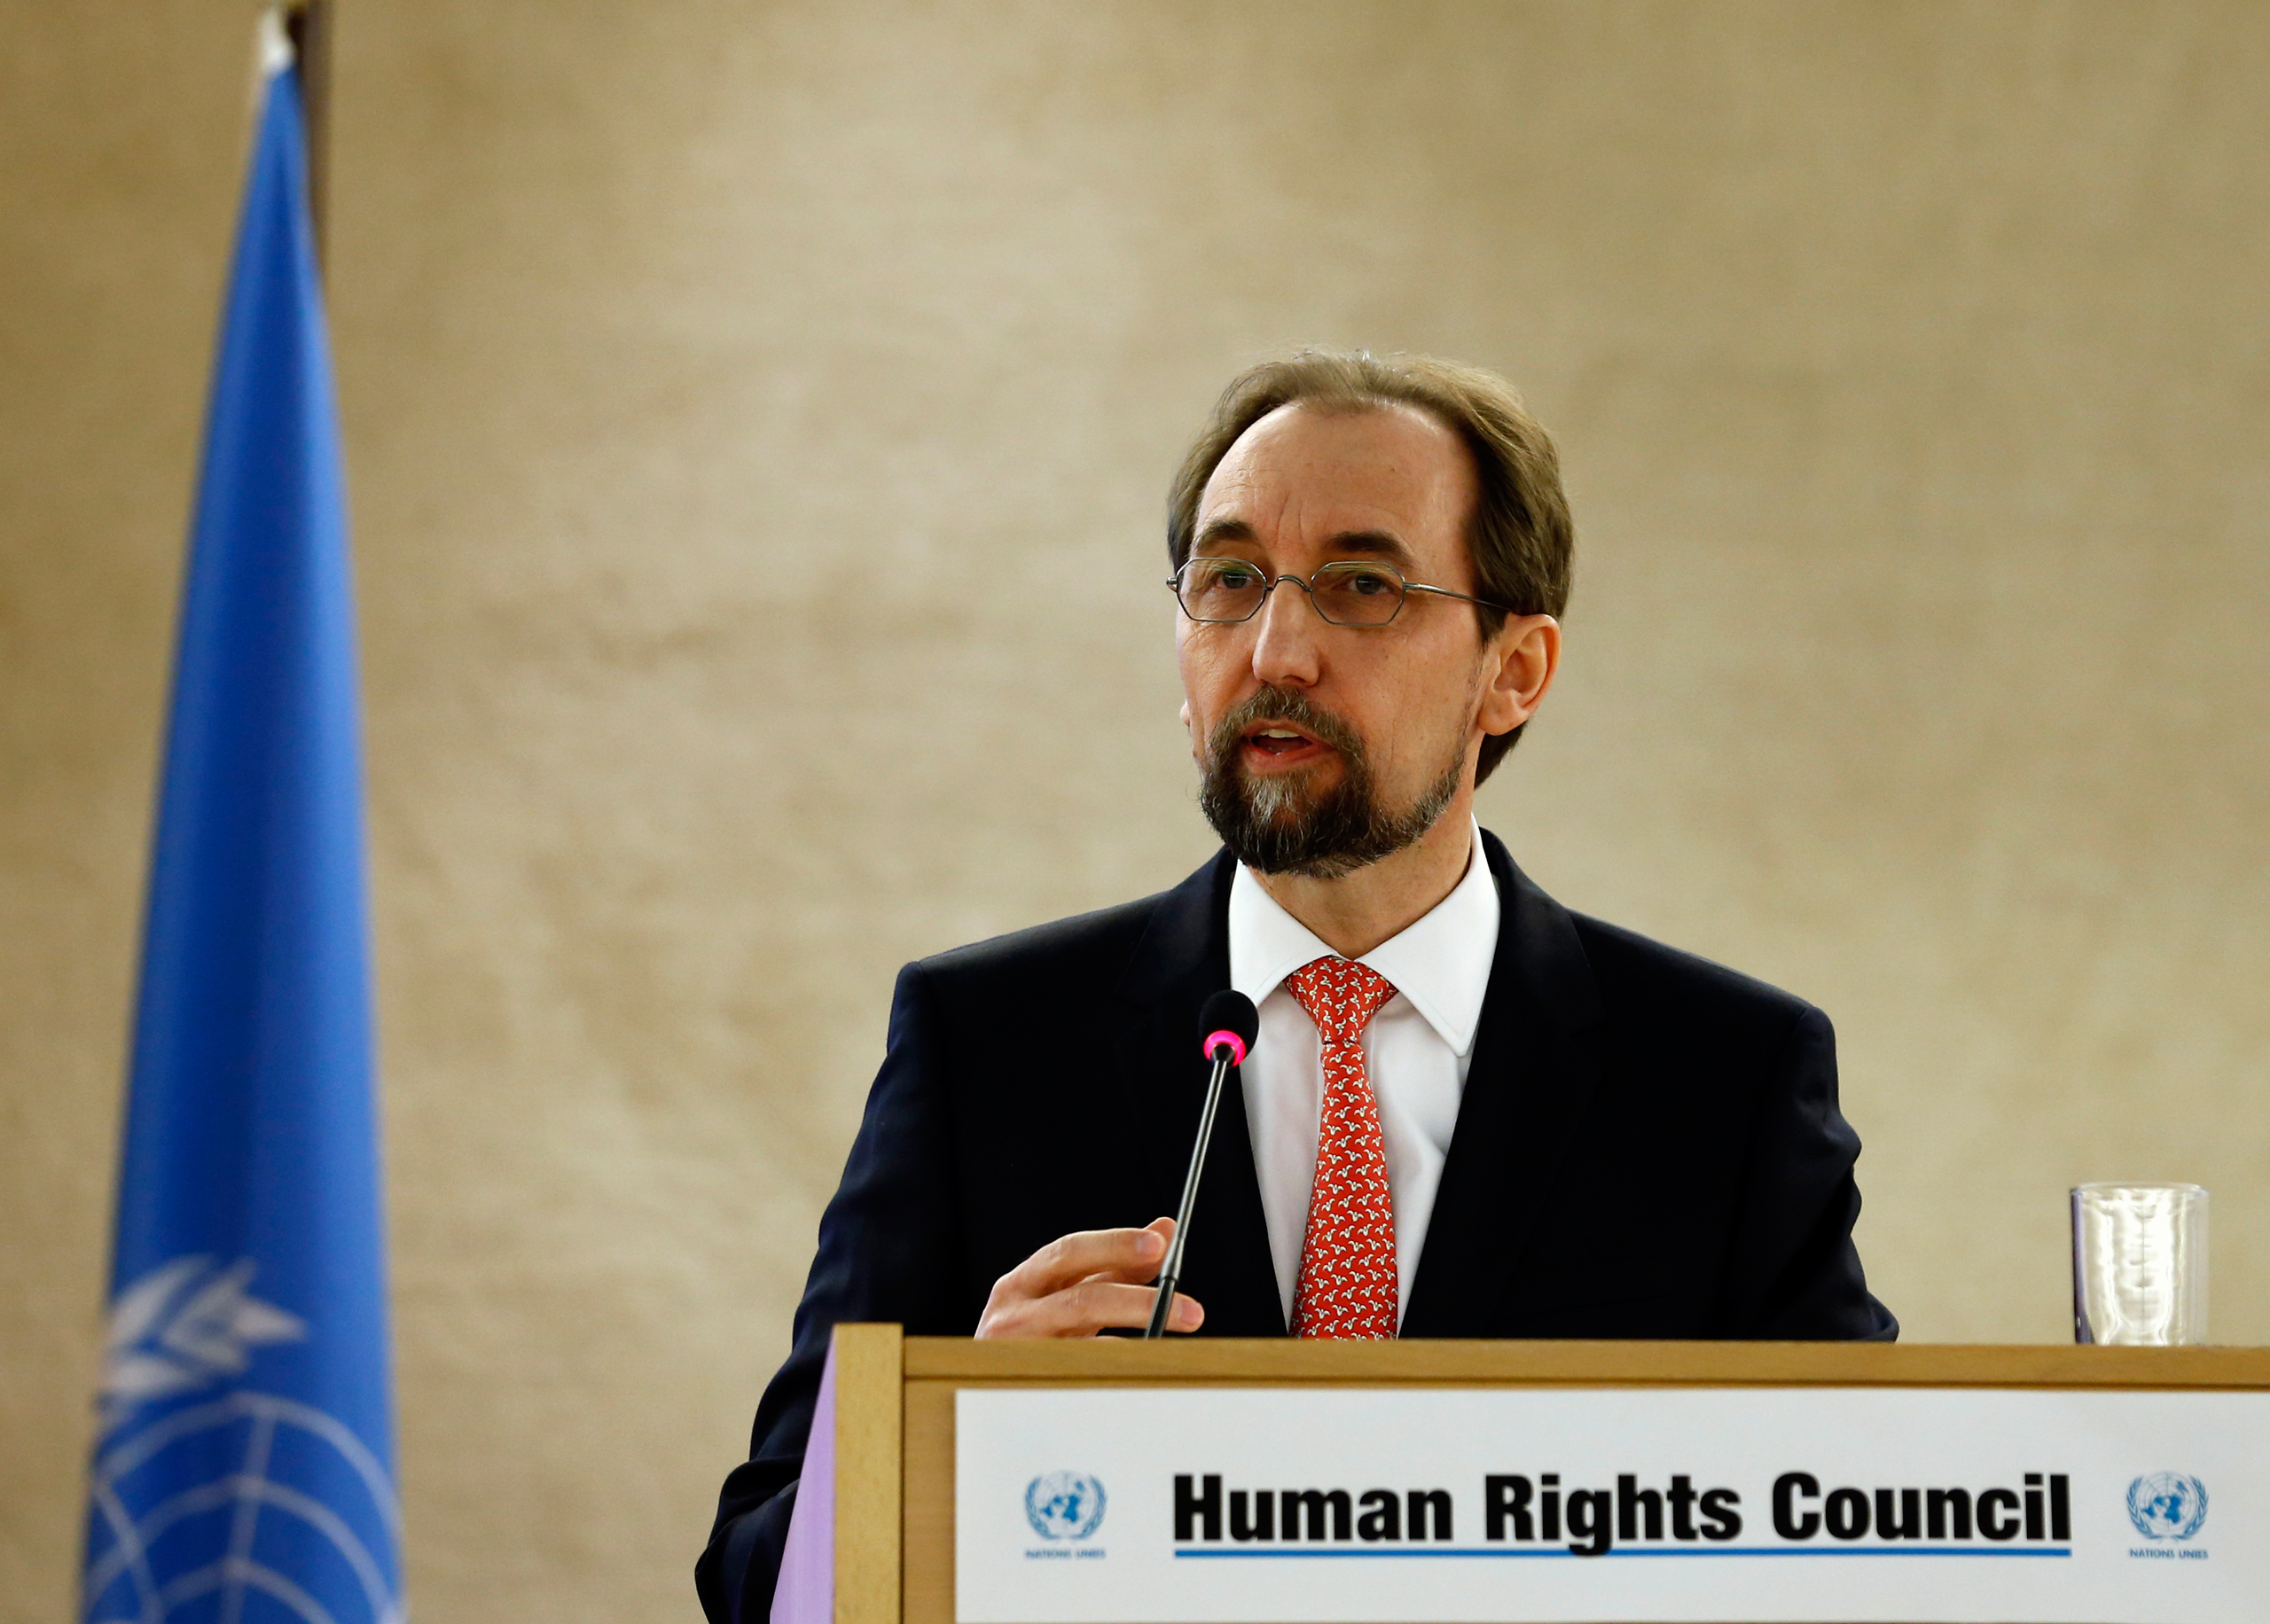 United Nations High Commissioner for Human Rights Zeid Ra'ad Al Hussein addresses the 31st session of the Human Rights Council at the U.N. European headquarters in Geneva on Feb. 29, 2016.